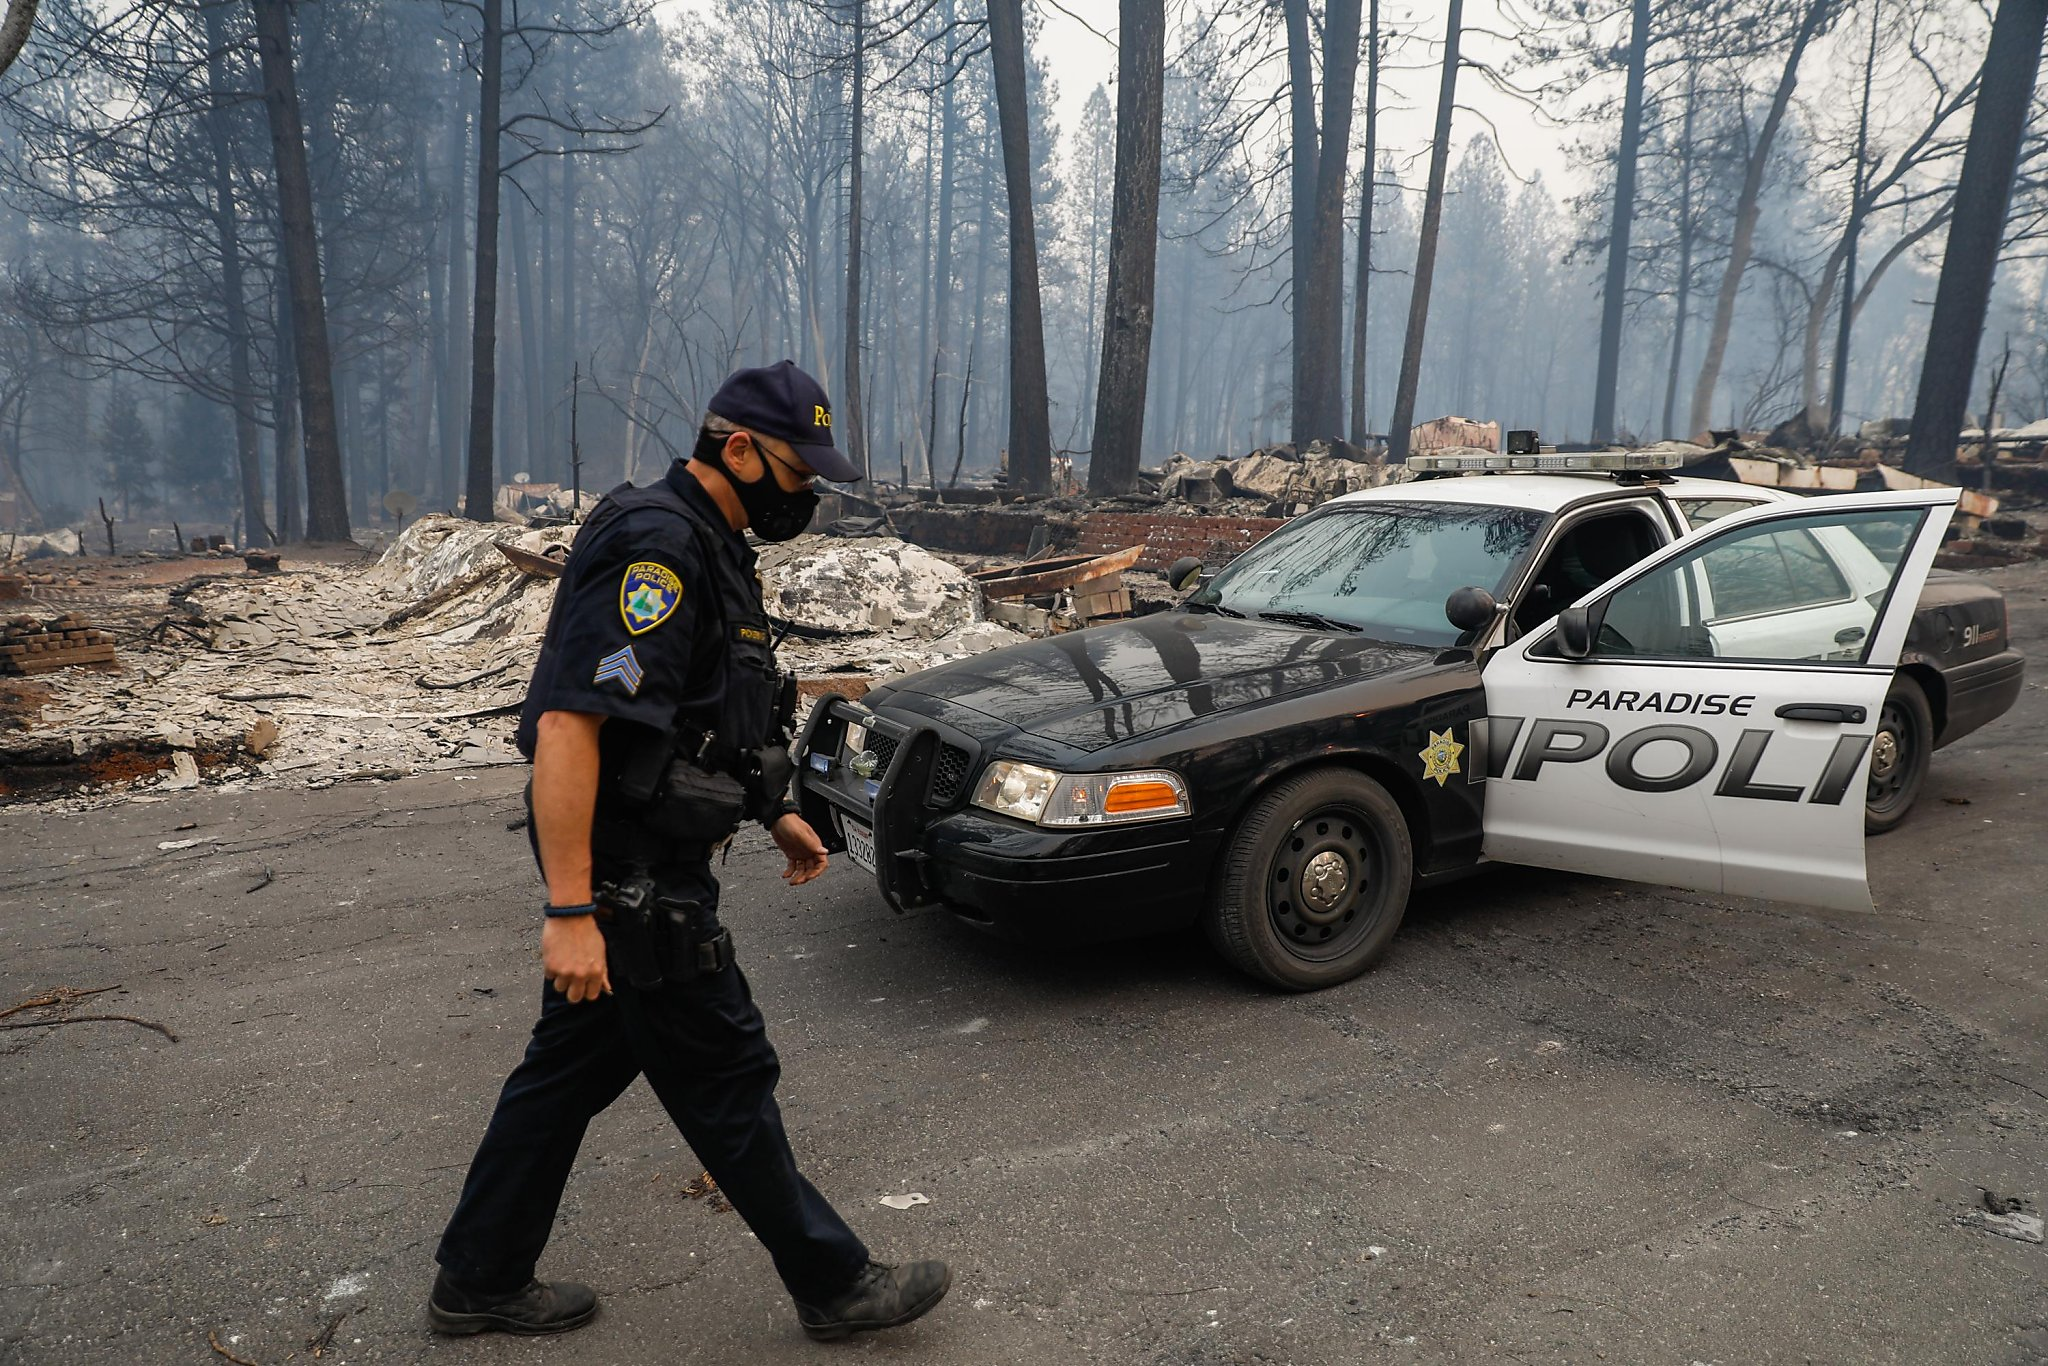 After Camp Fire, cops patrol a ruined Paradise: 'There's really no one to  watch over'